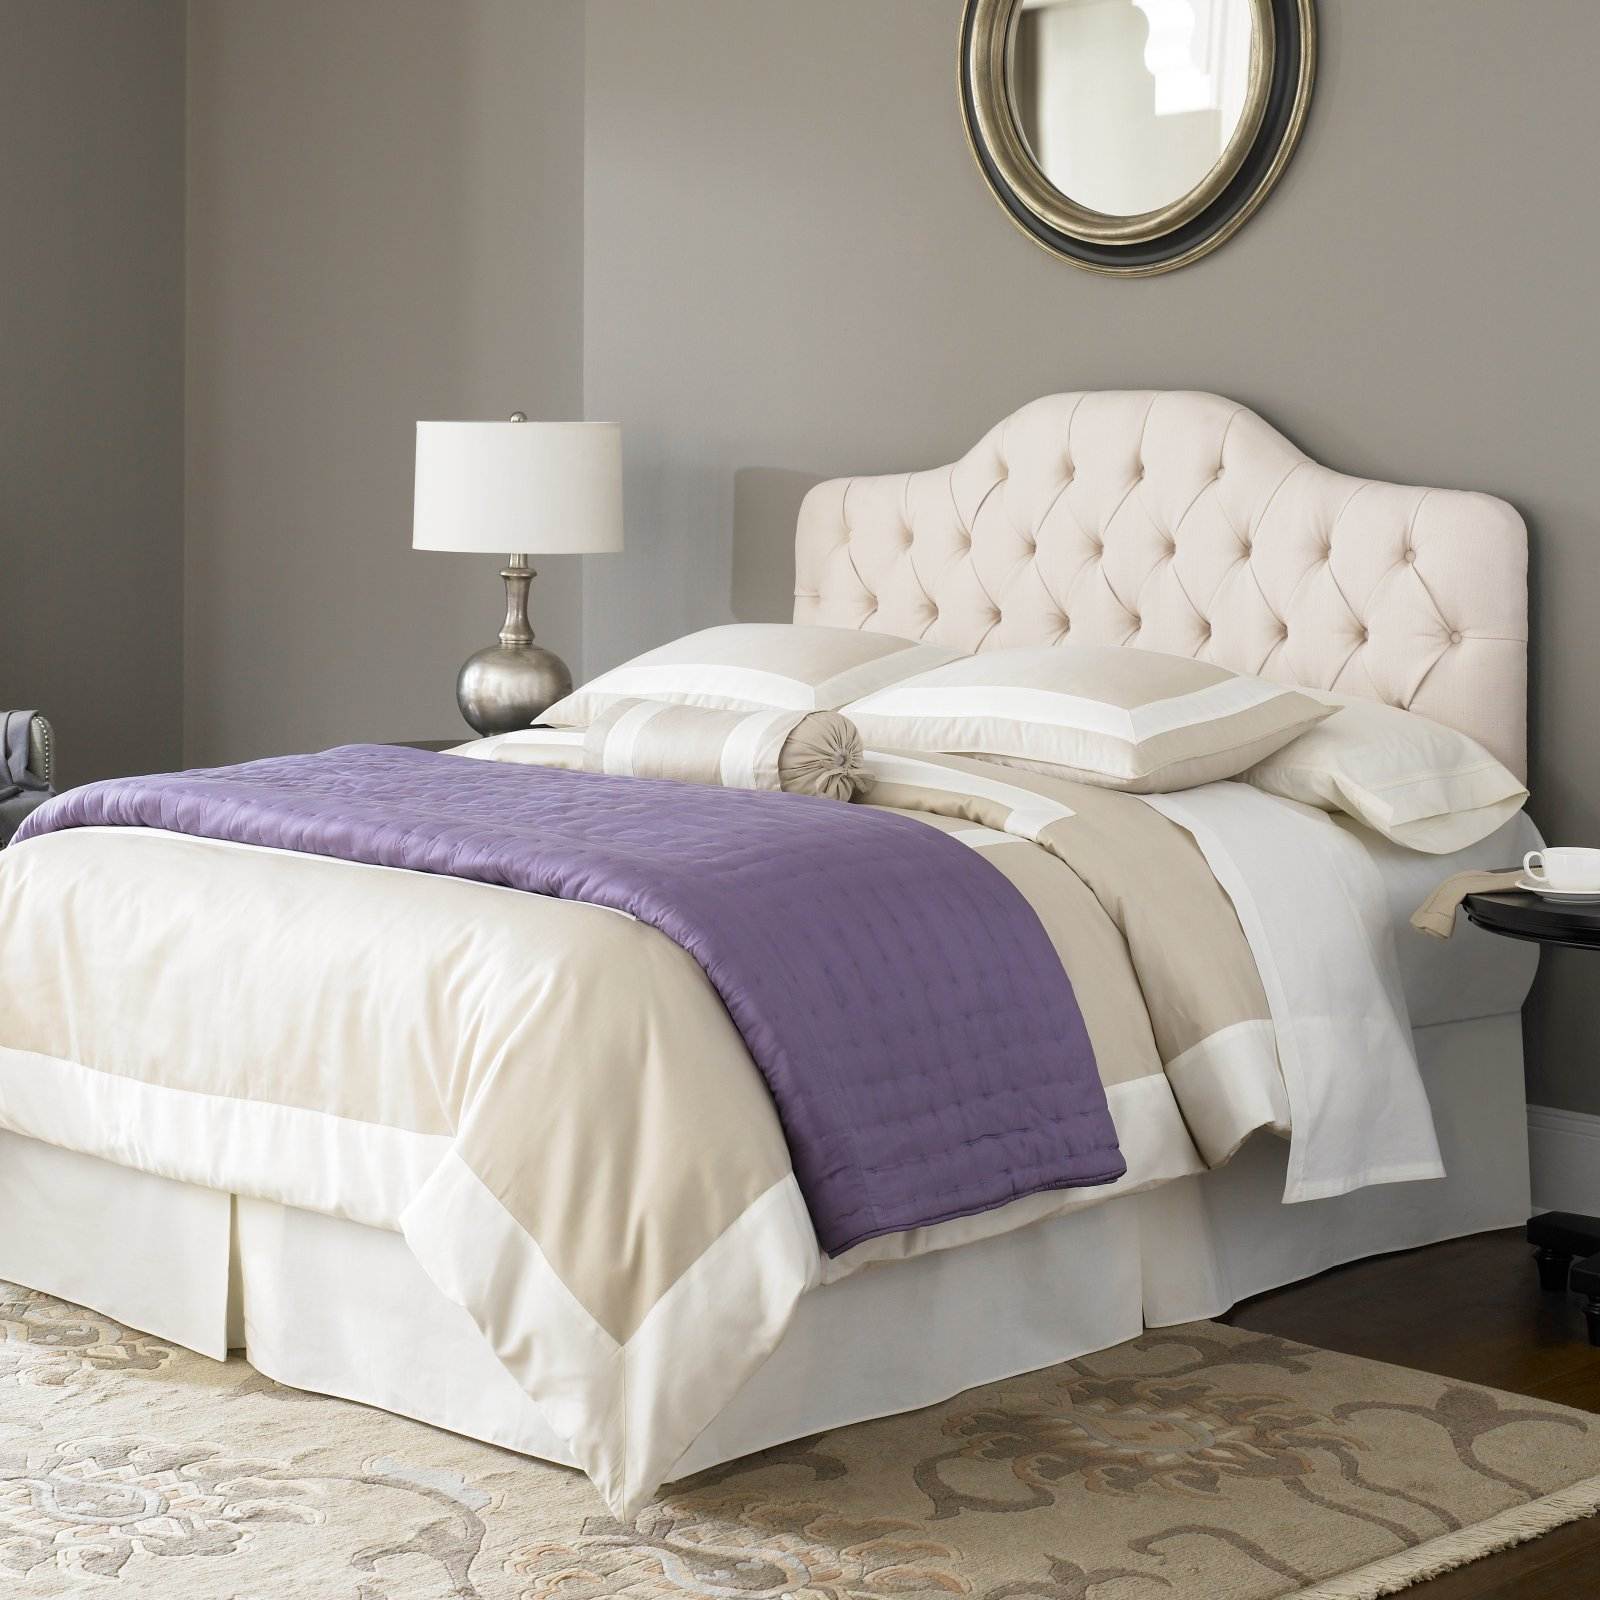 Martinique Complete Bed with Upholstered Headboard and Steel Support Frame, Ivory Finish, Multiple sizes available